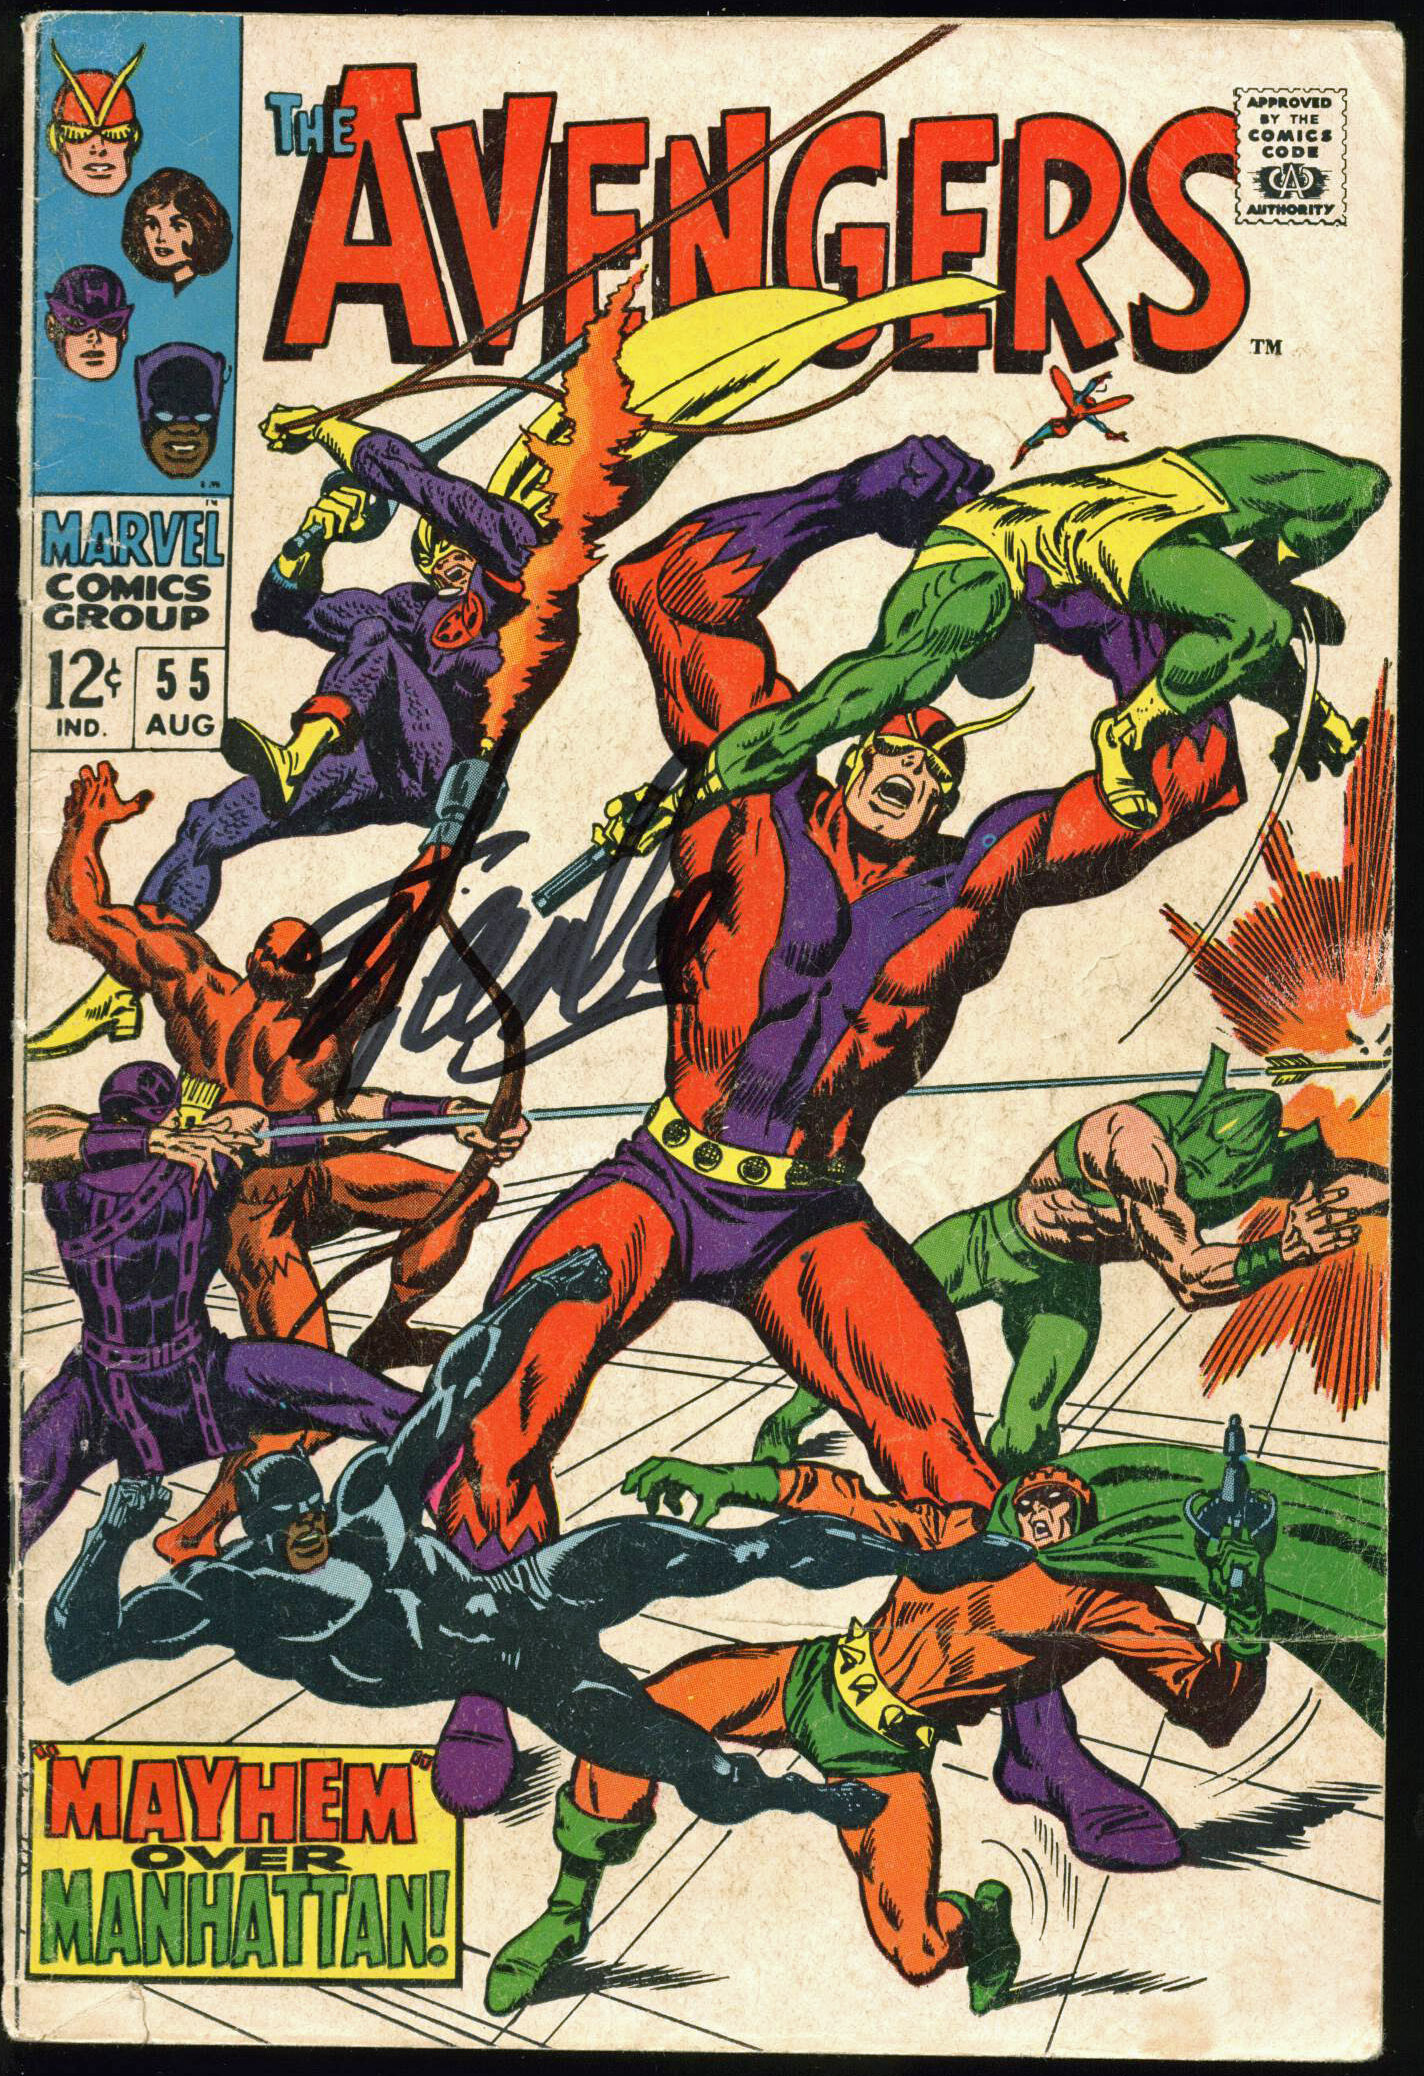 Stan Lee Authentic Signed The Avengers #55 Comic Book PSA/DNA #Z05348